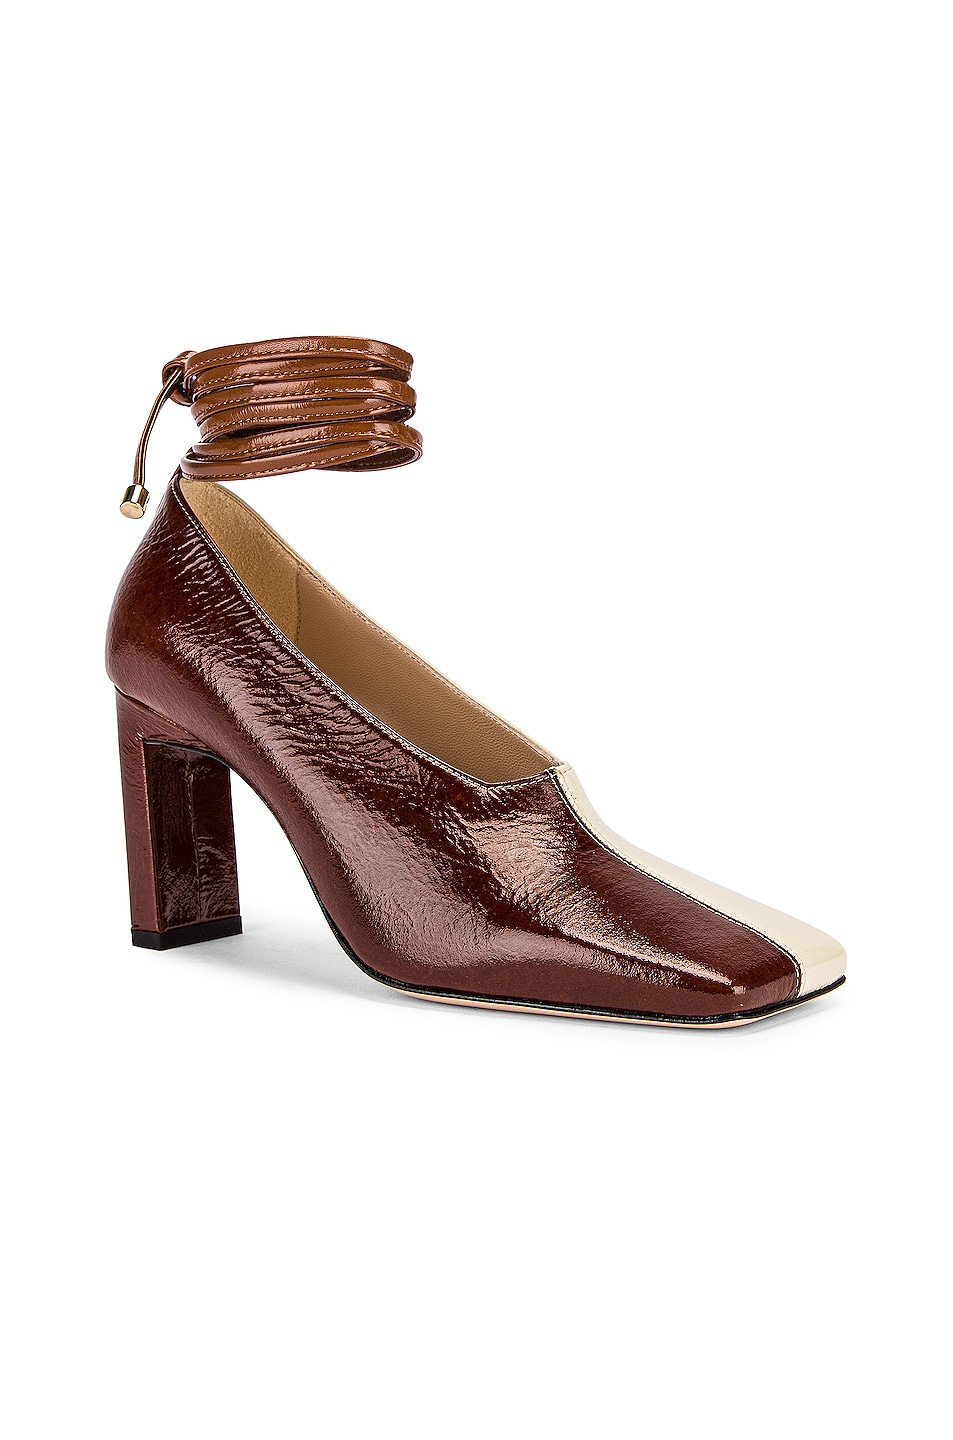 Image 3 of Wandler Isa Mules in Tan Shades